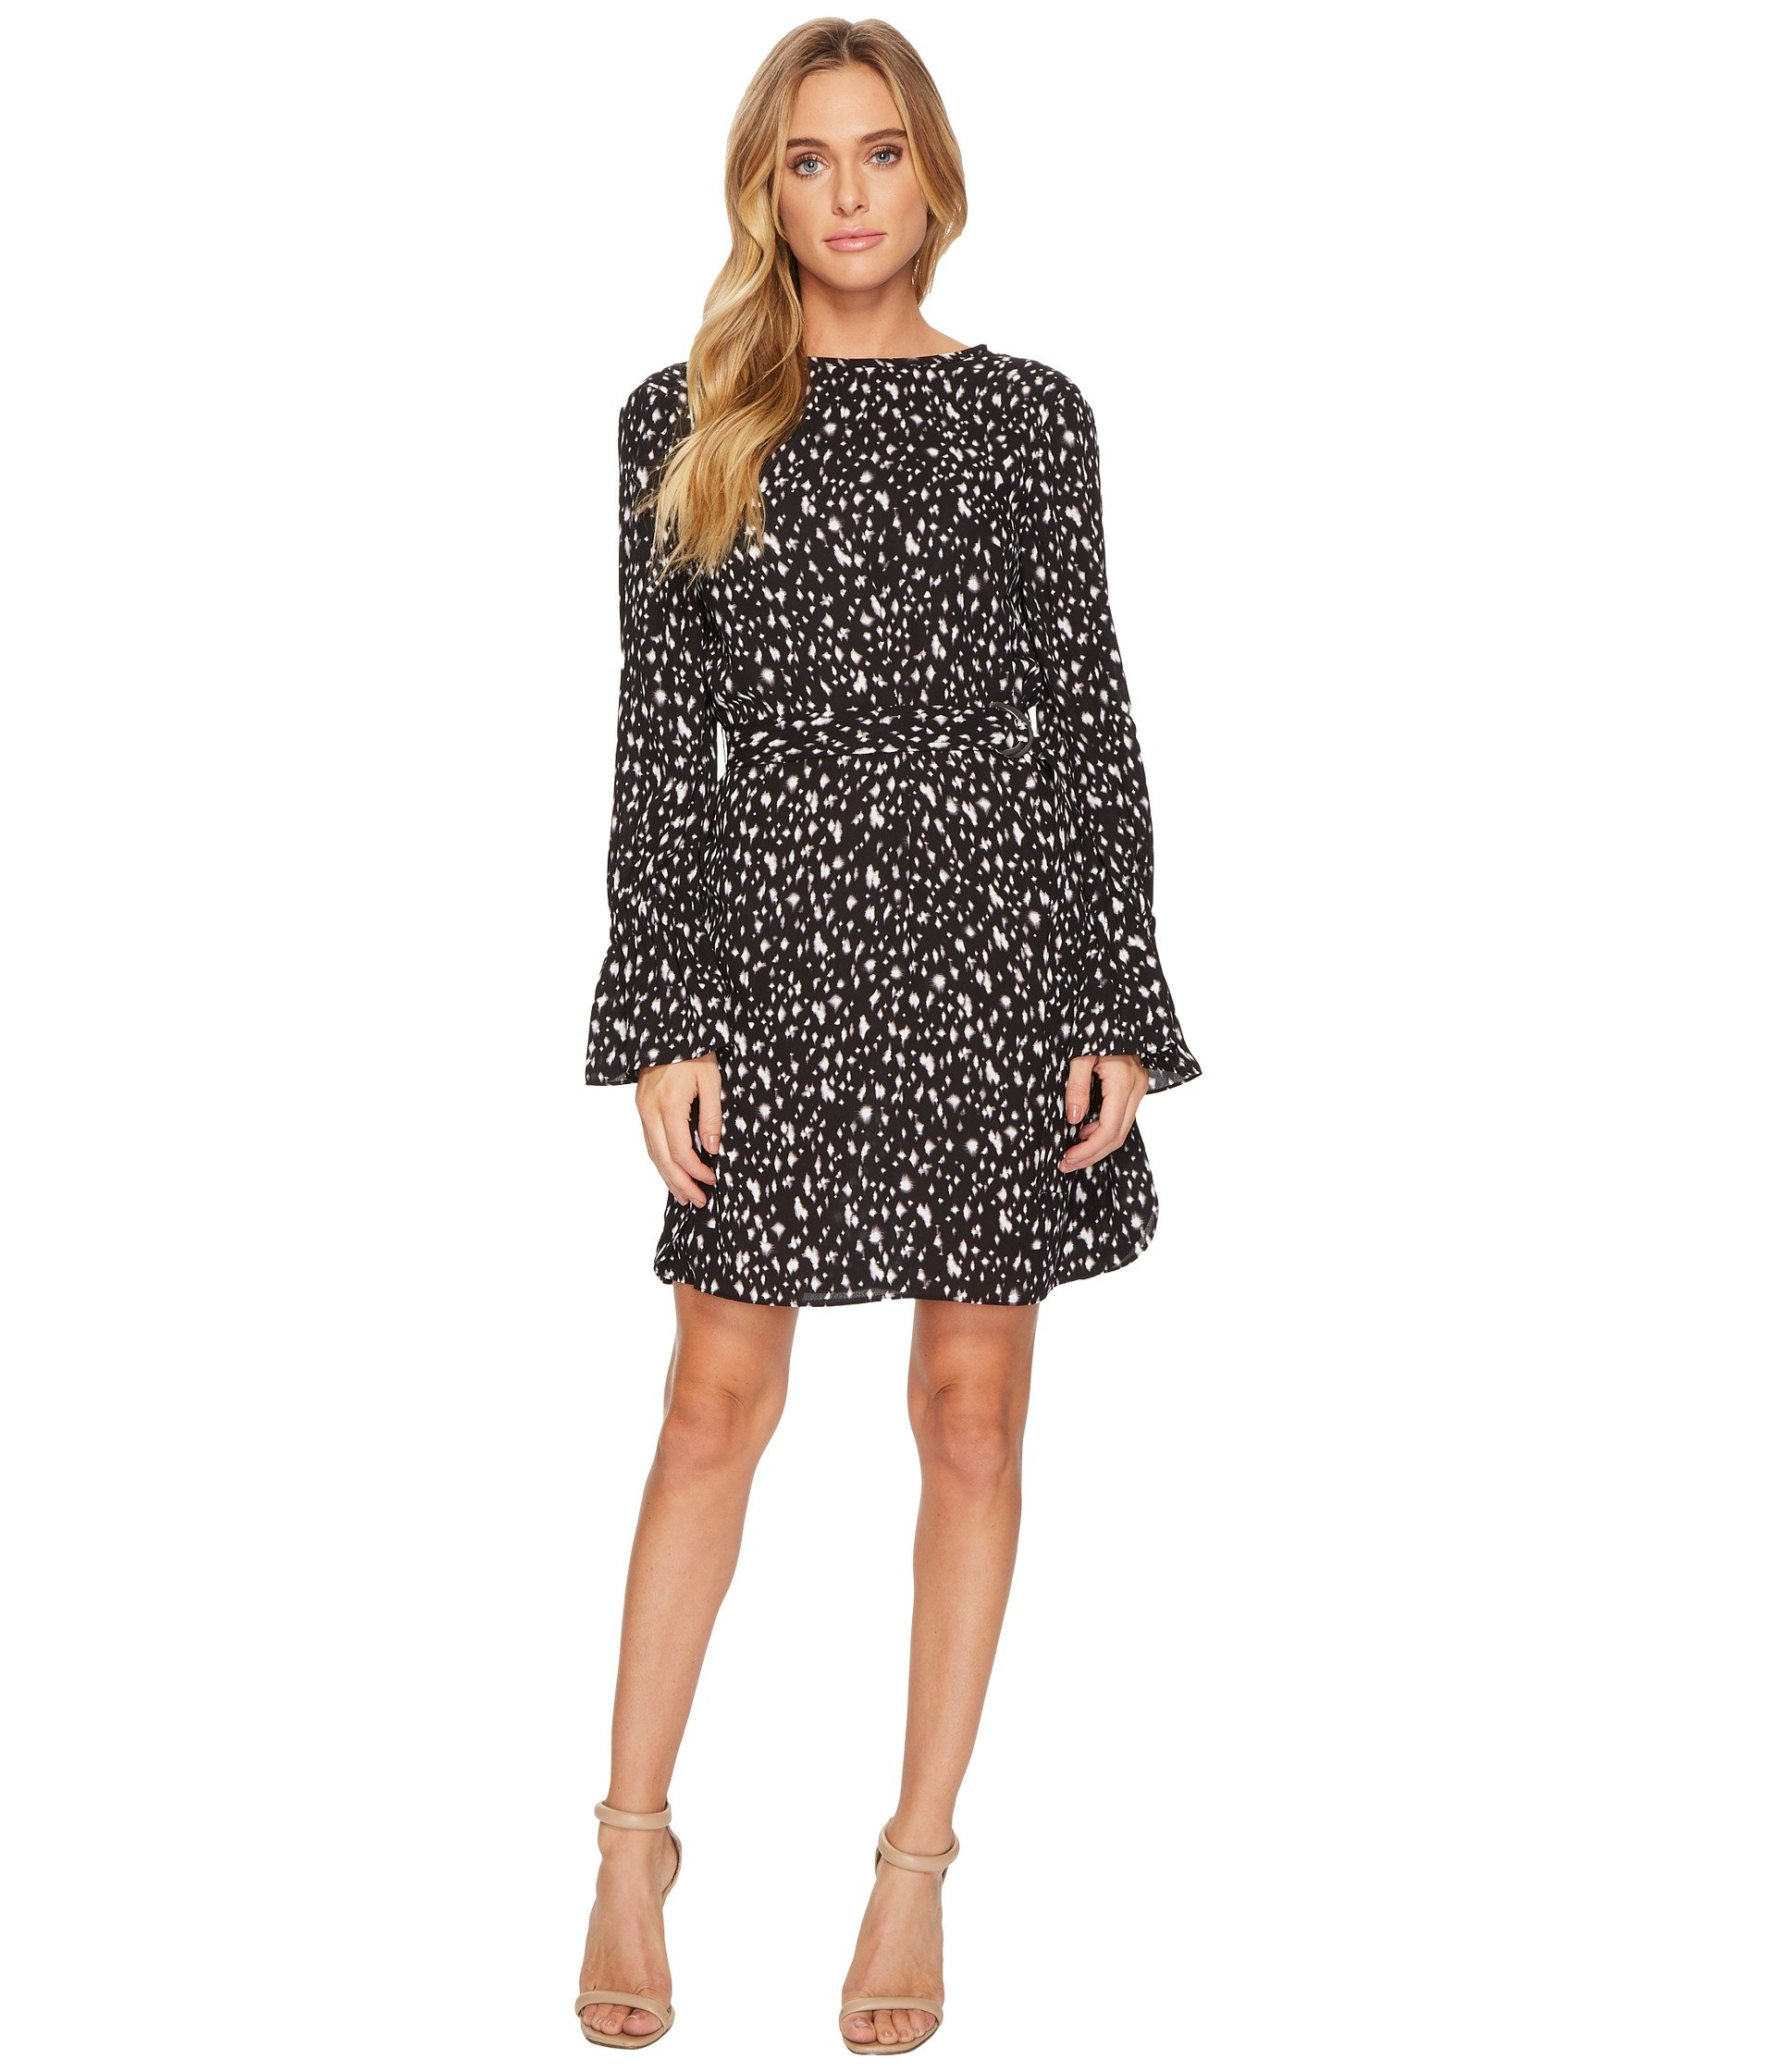 ELLEN TRACY Crew Neck Dress With D-Ring Belt, Starry Night